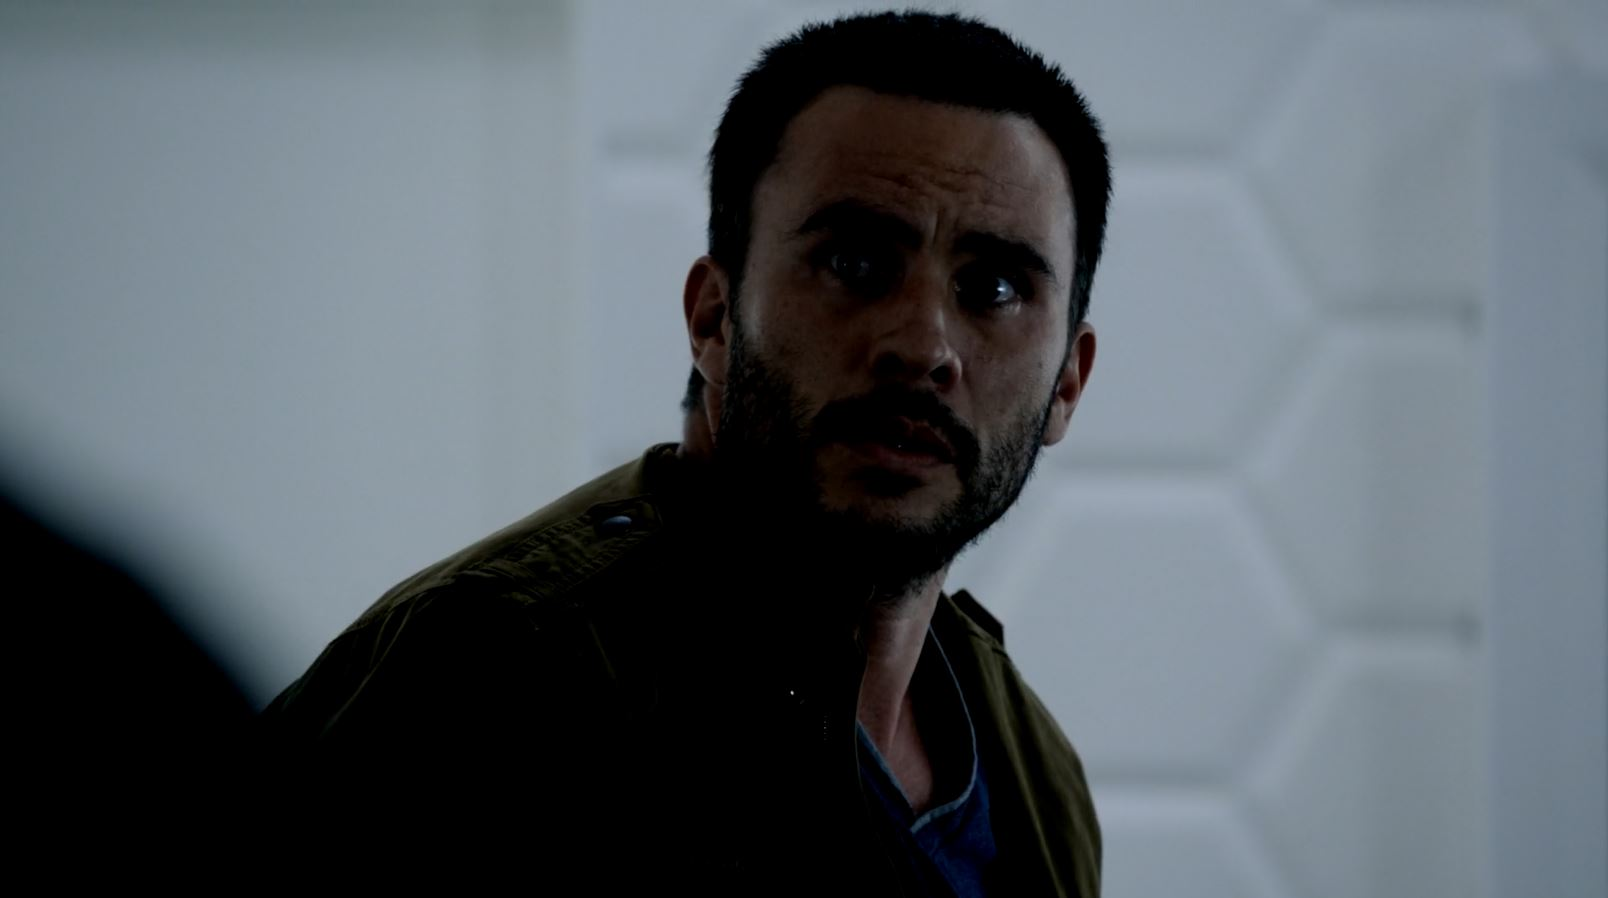 Joey Gutierrez. Agents of SHIELD S3Ep1 Laws of Nature Review